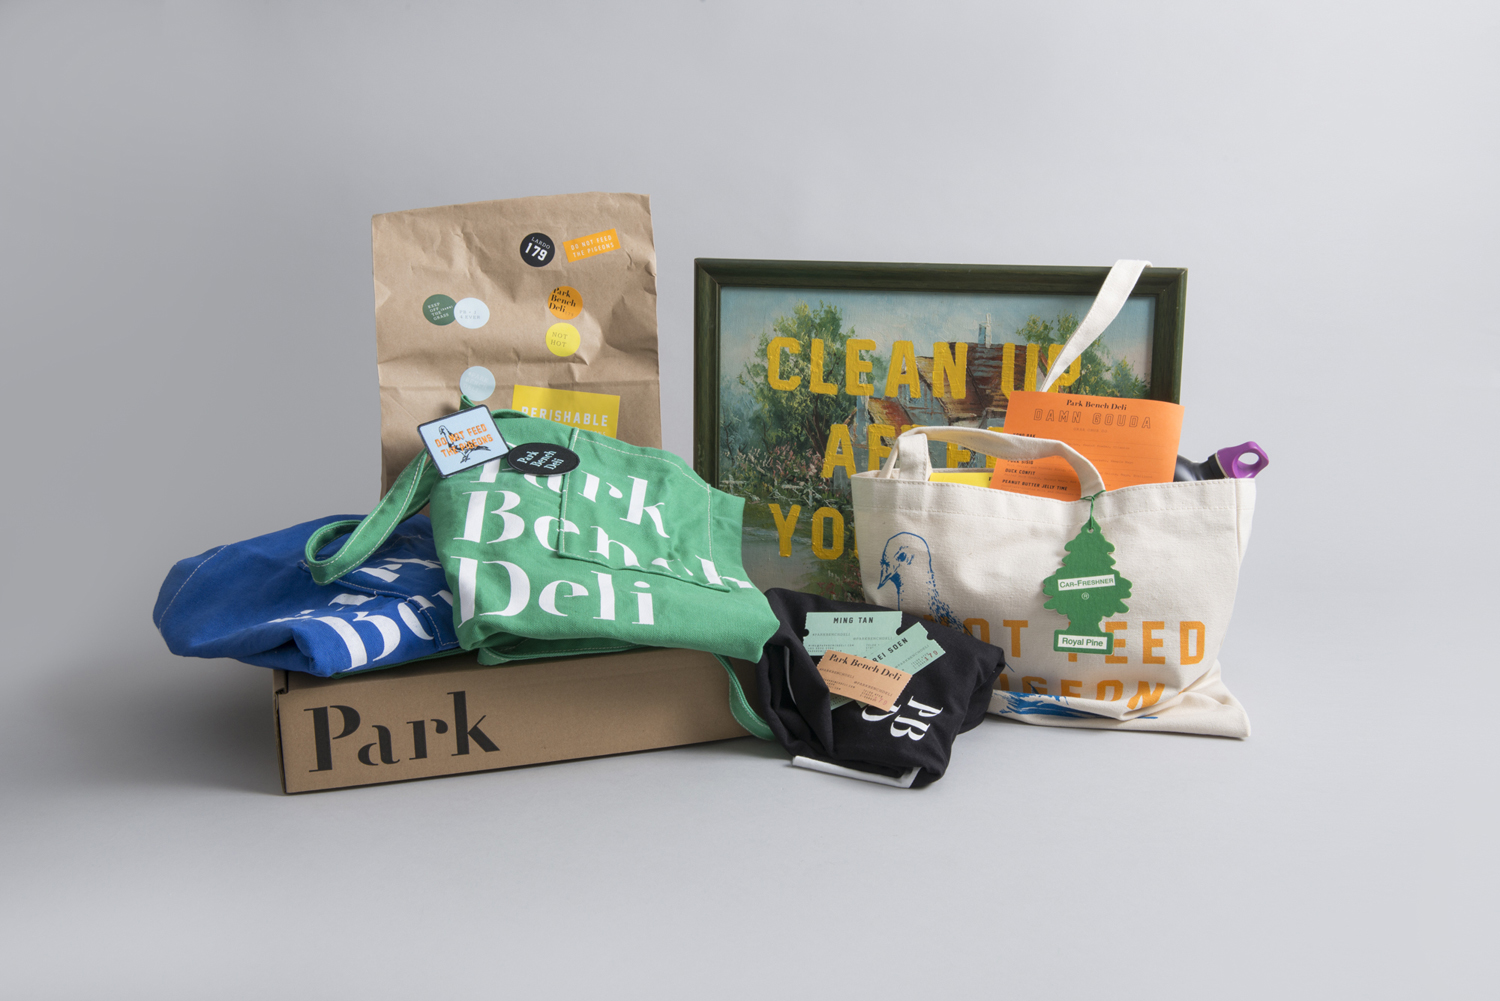 Brand identity, print and packaging by Foreign Policy for Singapore's Park Bench Deli